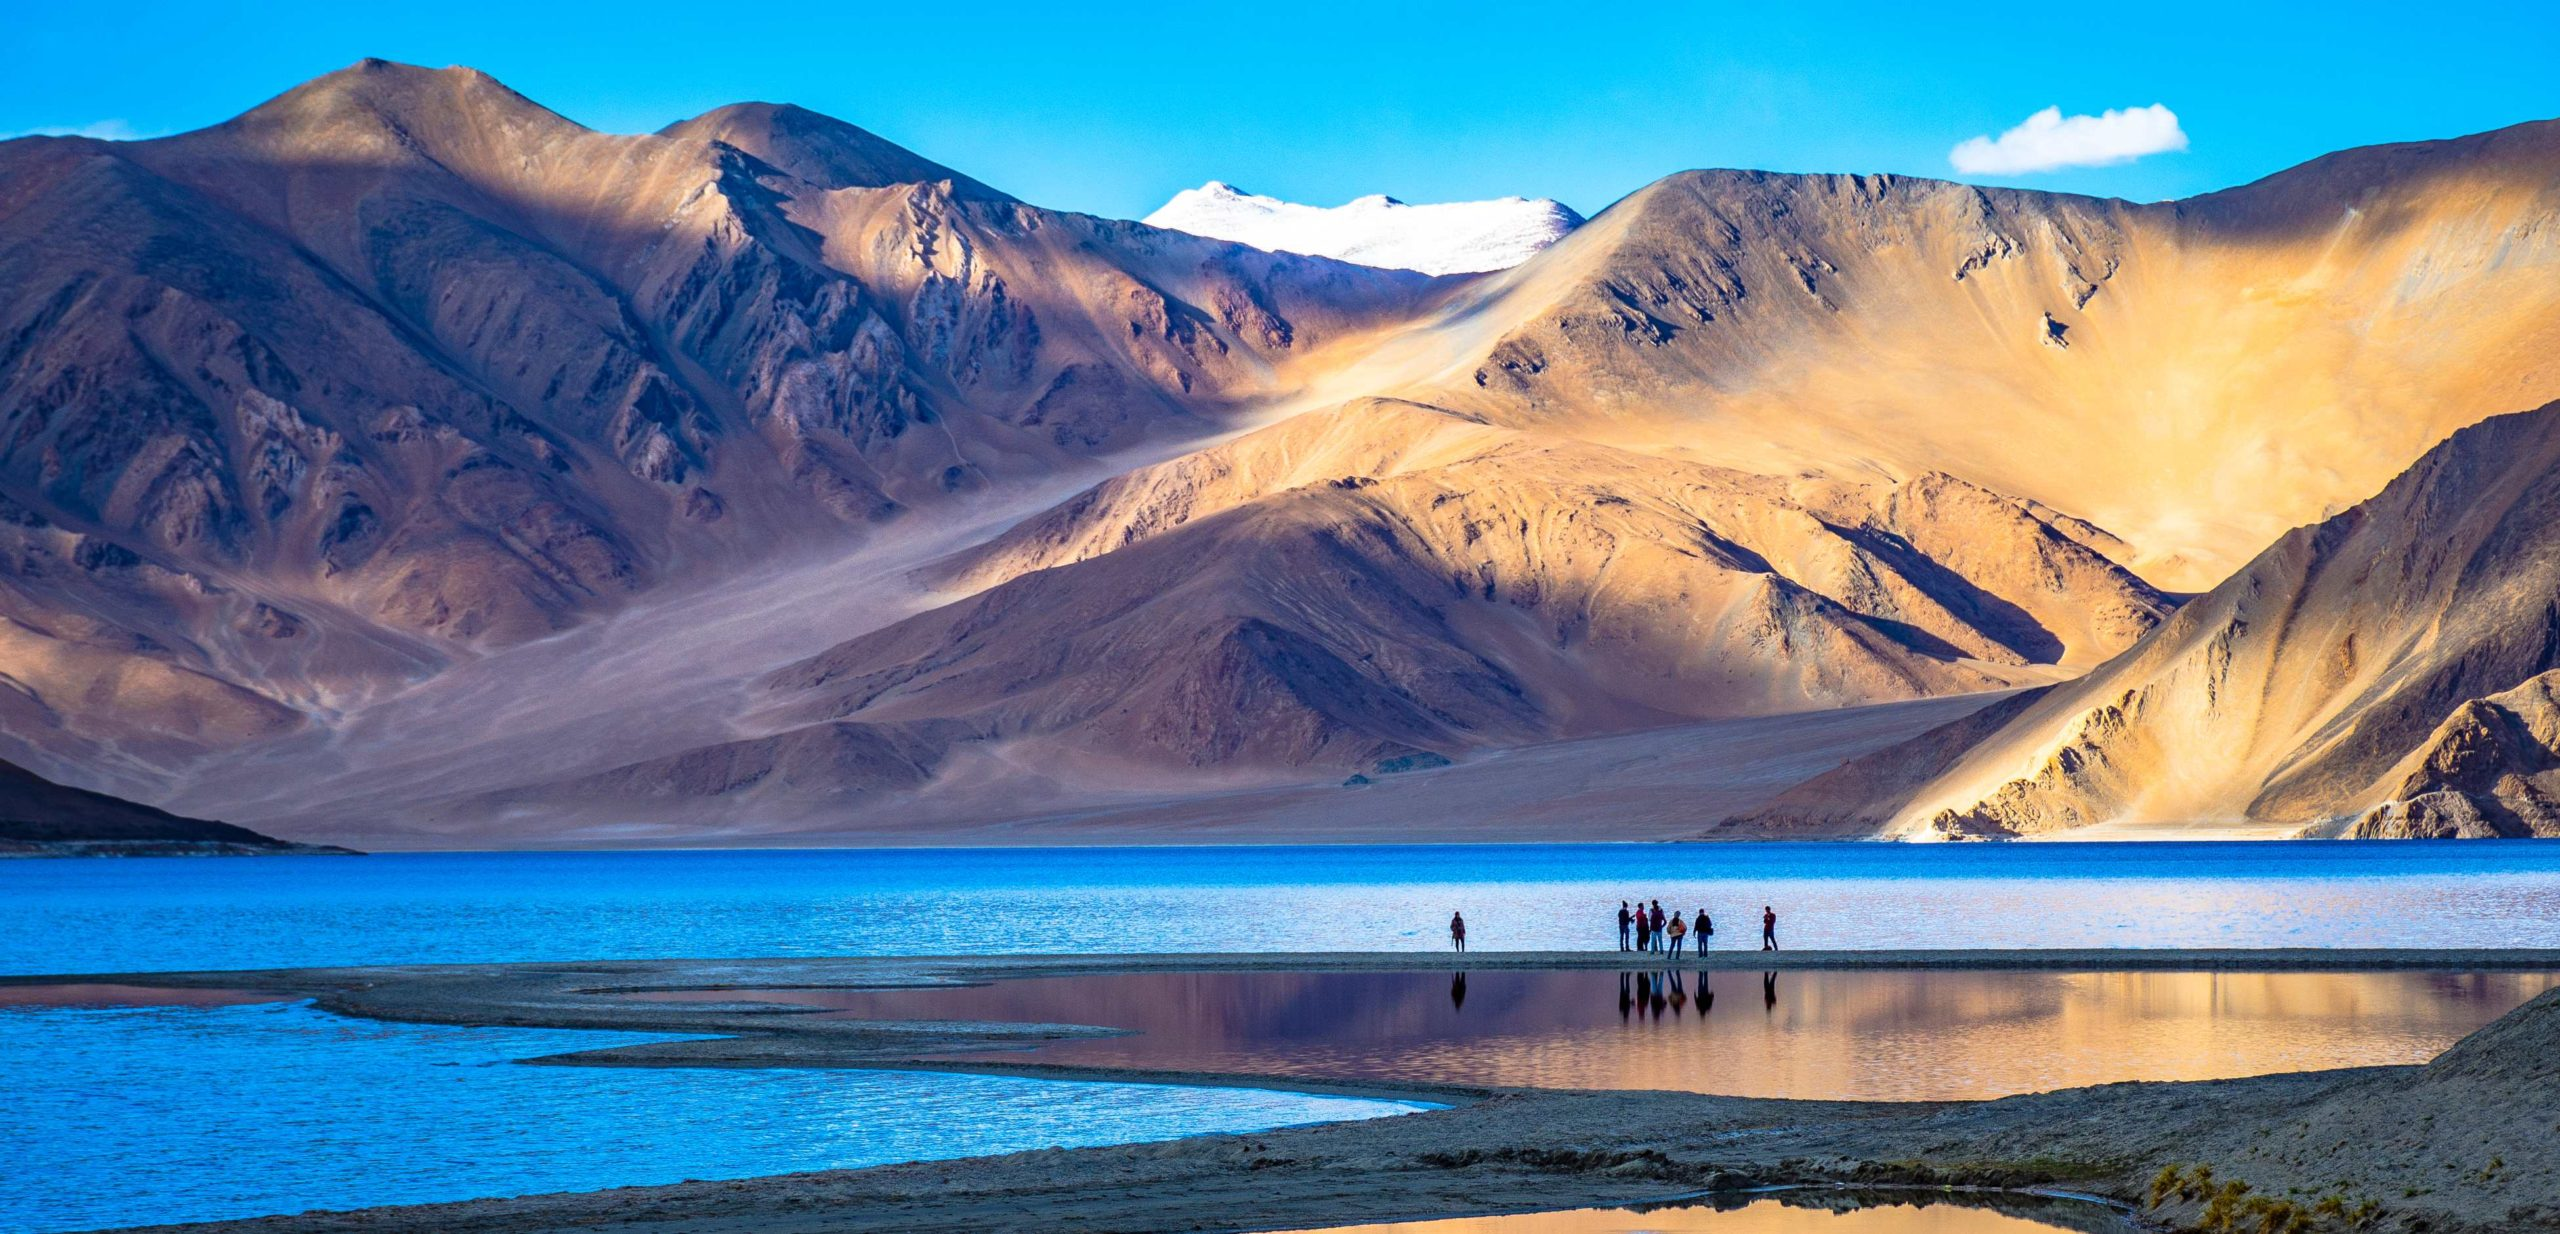 Chandigarh to Leh taxi service